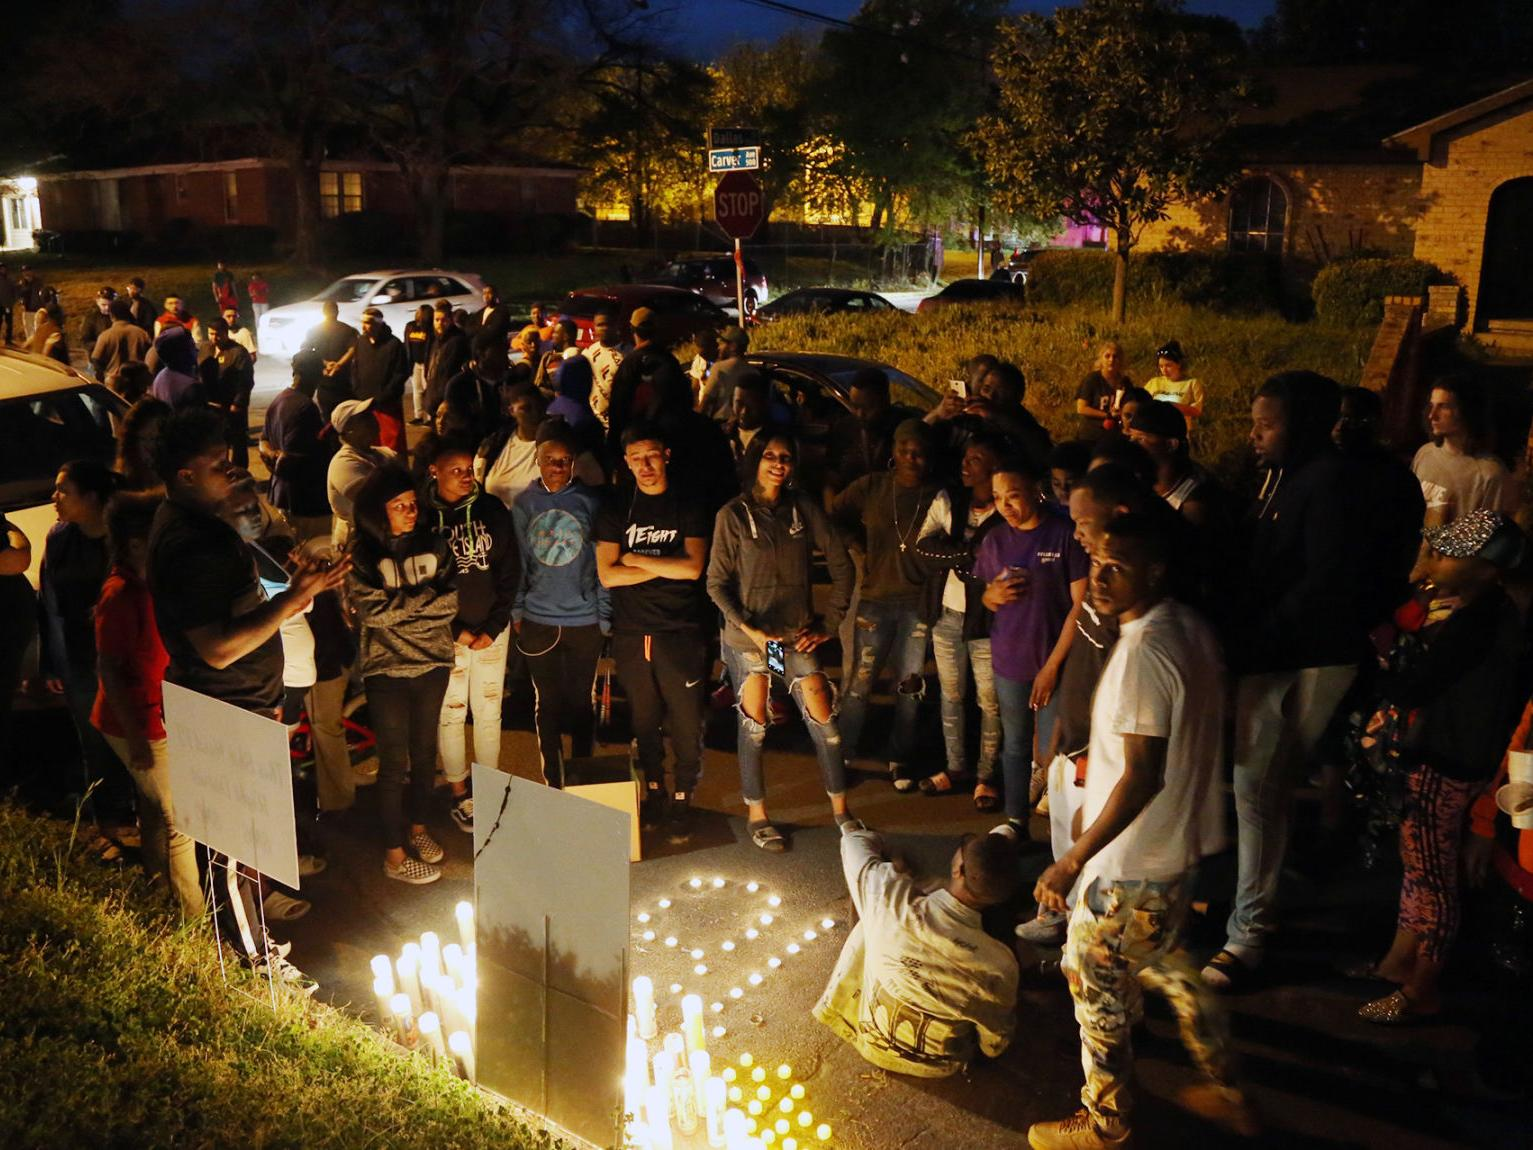 Waco Police Investigate More Homicides In 2019 Crime Wacotrib Com From above the vigil, the park was a sea of candlelight, with people spilling out to the fringes. waco police investigate more homicides